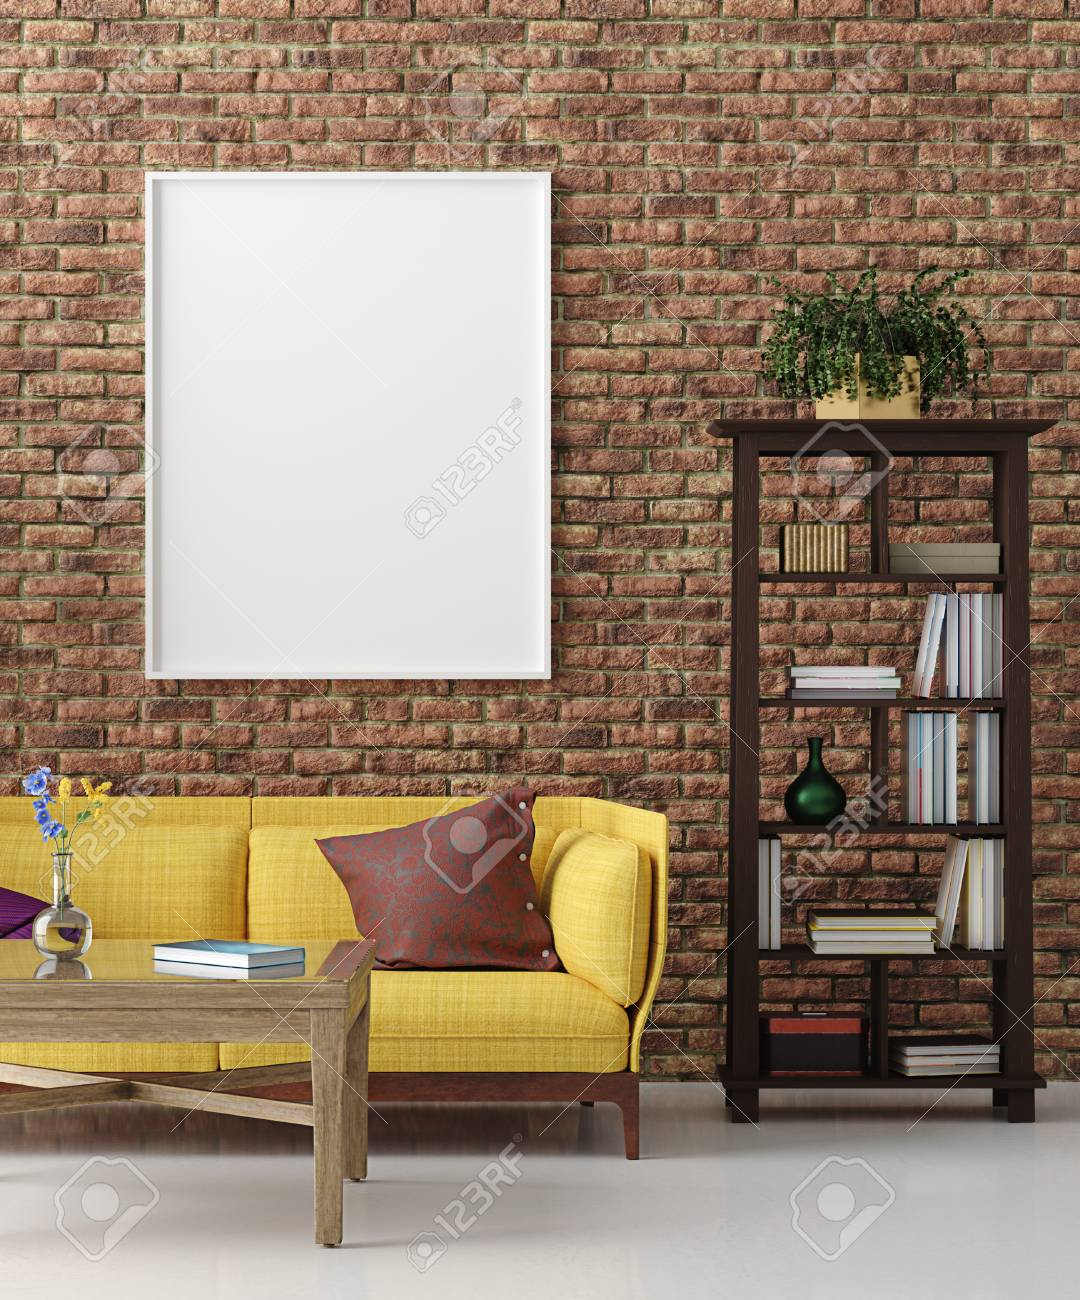 Mockup In Colorful Hipster Living Room Bohemian Style 3d Render